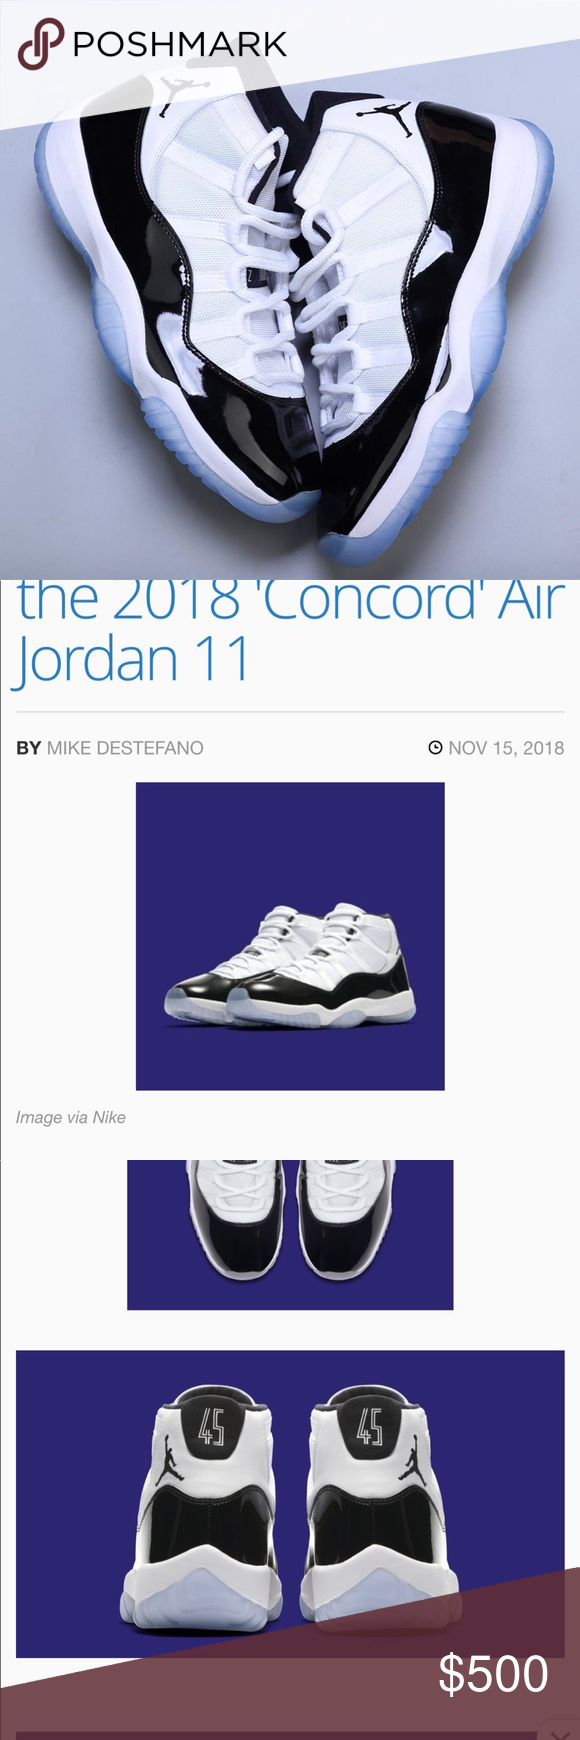 8b3a15dd3cb055 Not released yet Jordan Retro Concords Jordan Brand will be returning  another all-